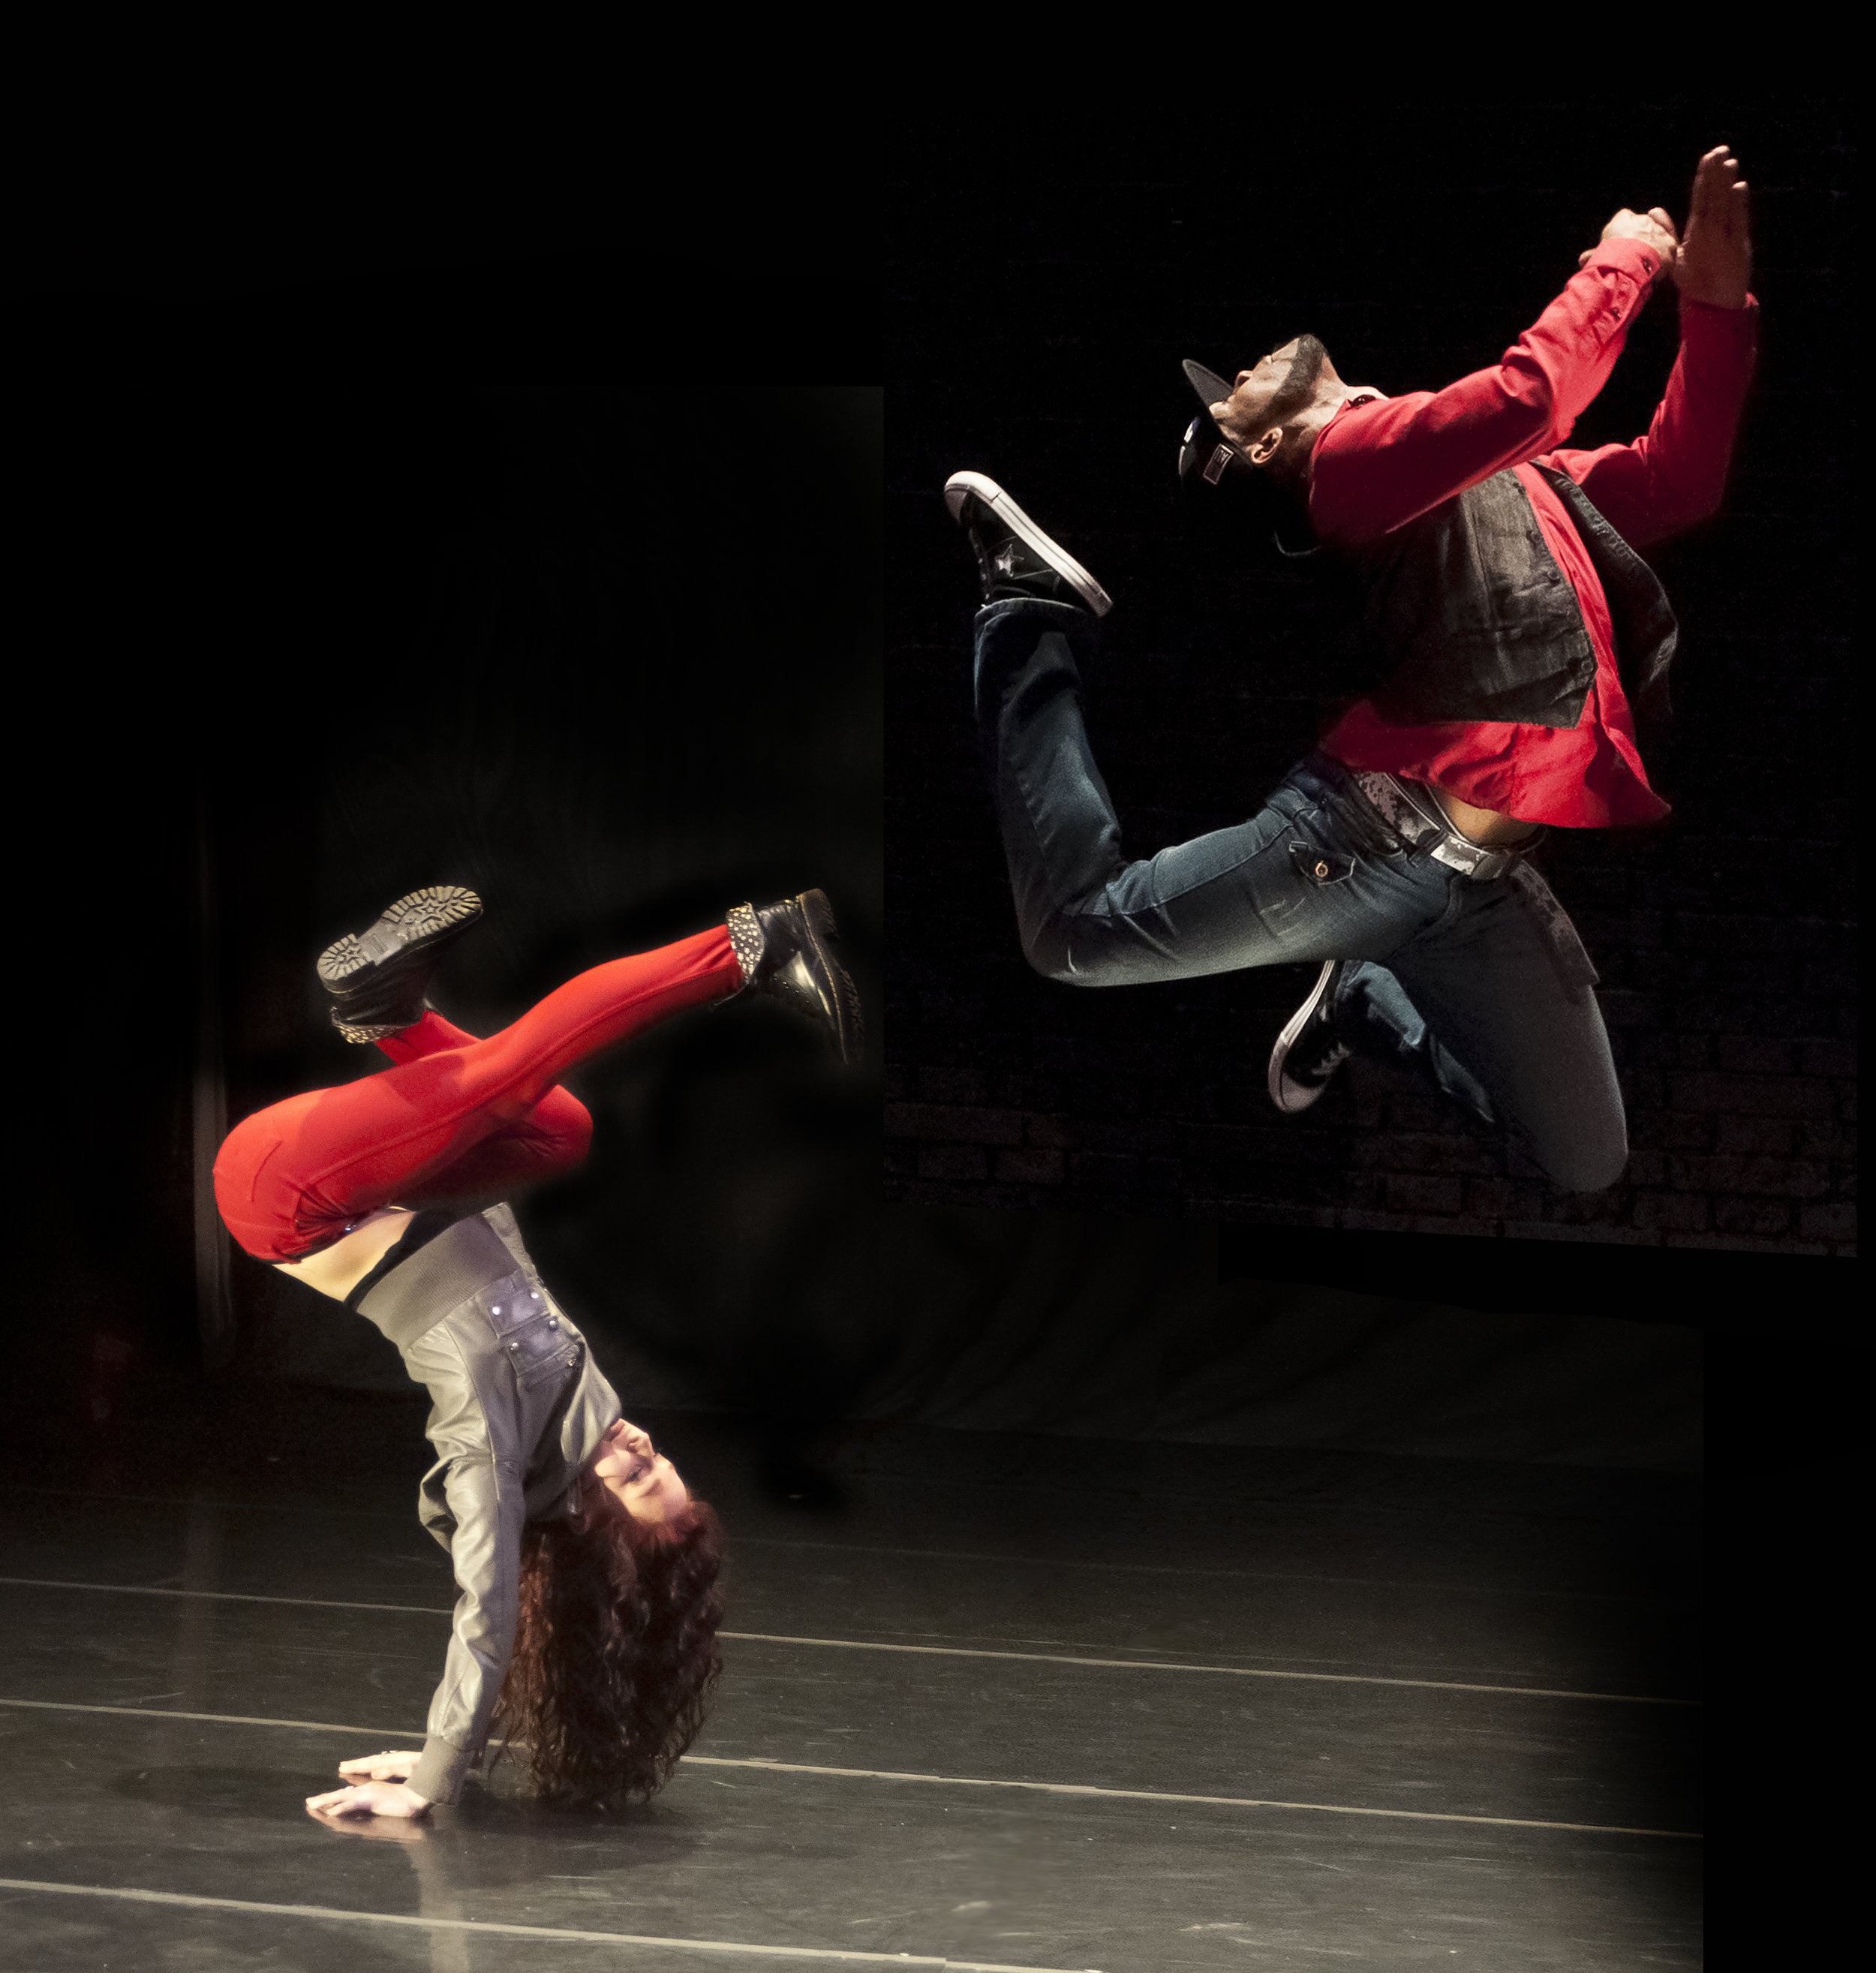 Chan_and_David_Chicago Dance Crash_photo by Emily Coughlin_1.jpg